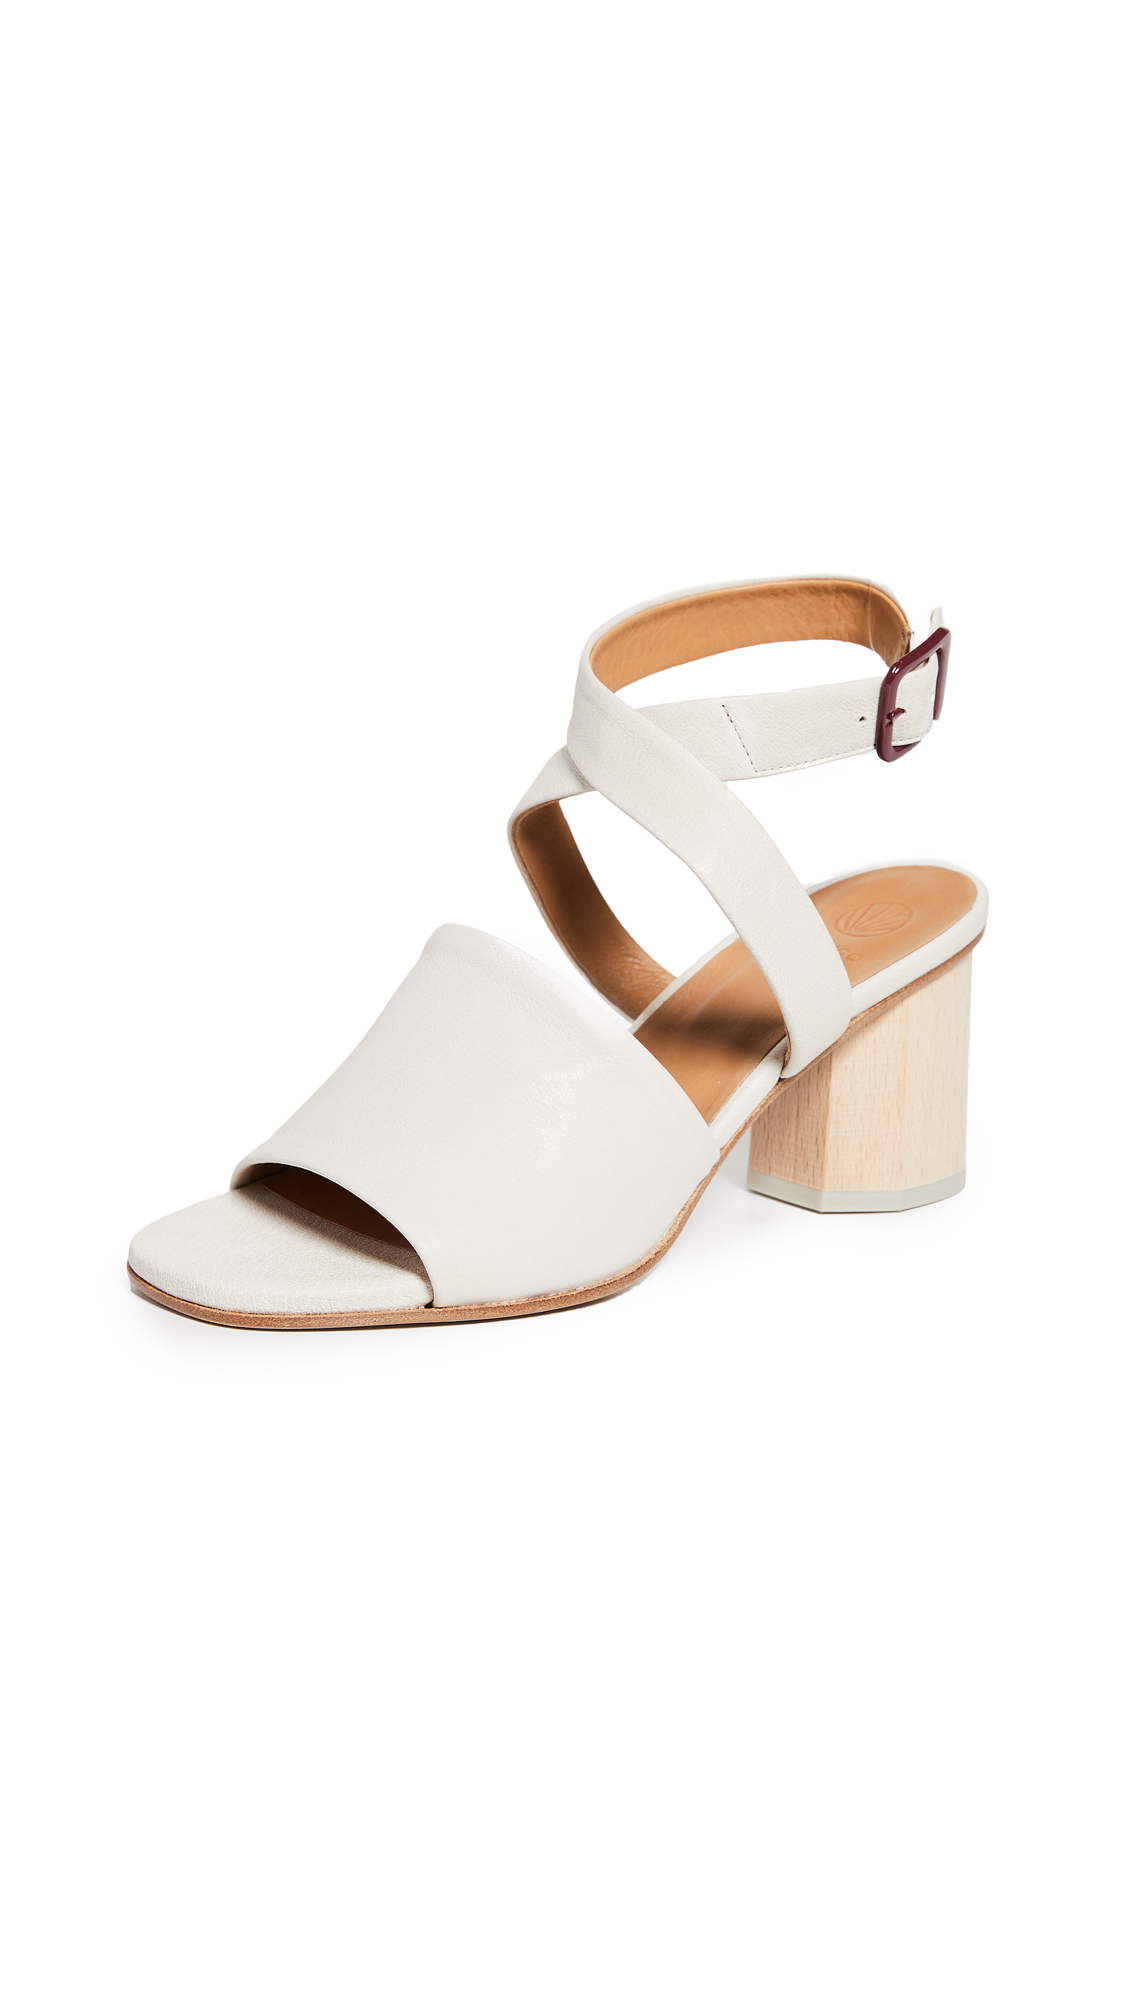 Coclico Shoes Billie Block Heel Sandals - Rock Avorio